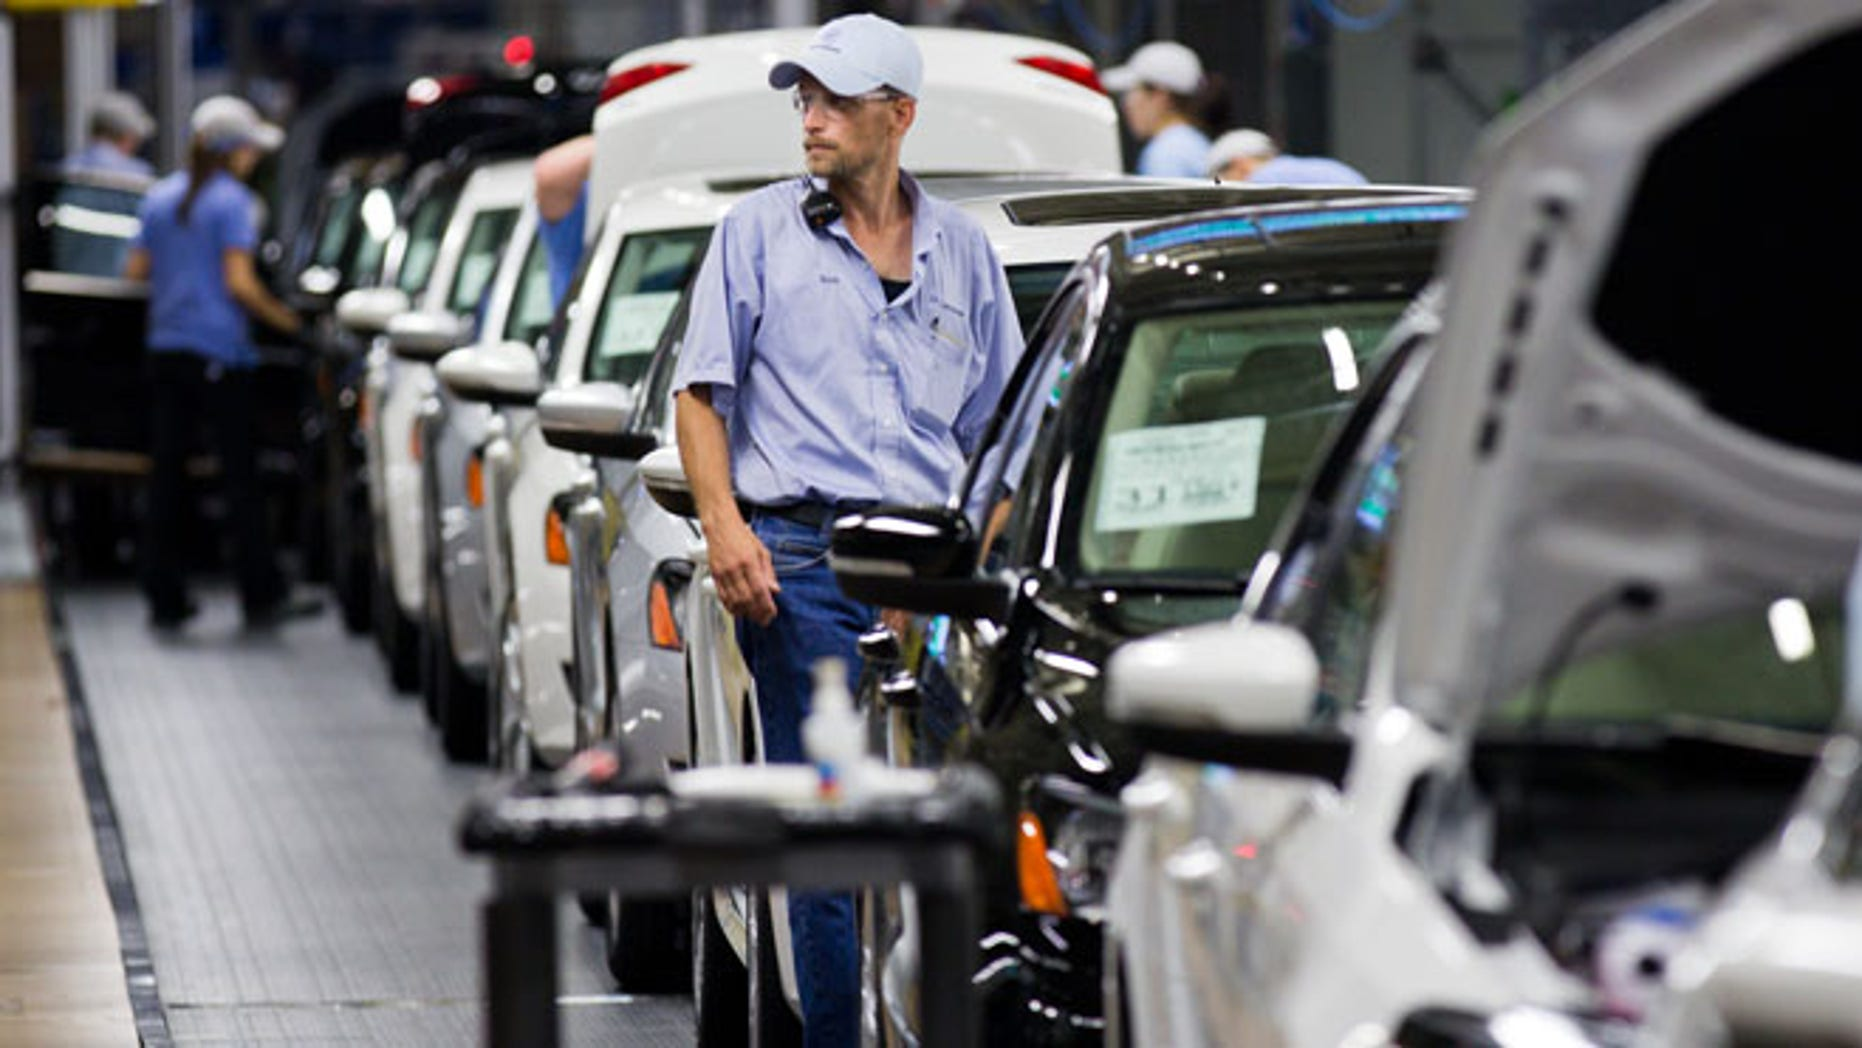 In this July 31, 2012 photo, an employee at the Volkswagen plant in Chattanooga, Tenn., works on a Passat sedan. Martin Winterkorn, the German automaker's CEO, said on Tuesday, Oct. 23, 2012, that Volkswagen is considering the production of a new midsize SUV for the North American market, and that the Tennessee facility would be in the running to make the model. (AP Photo/Erik Schelzig)